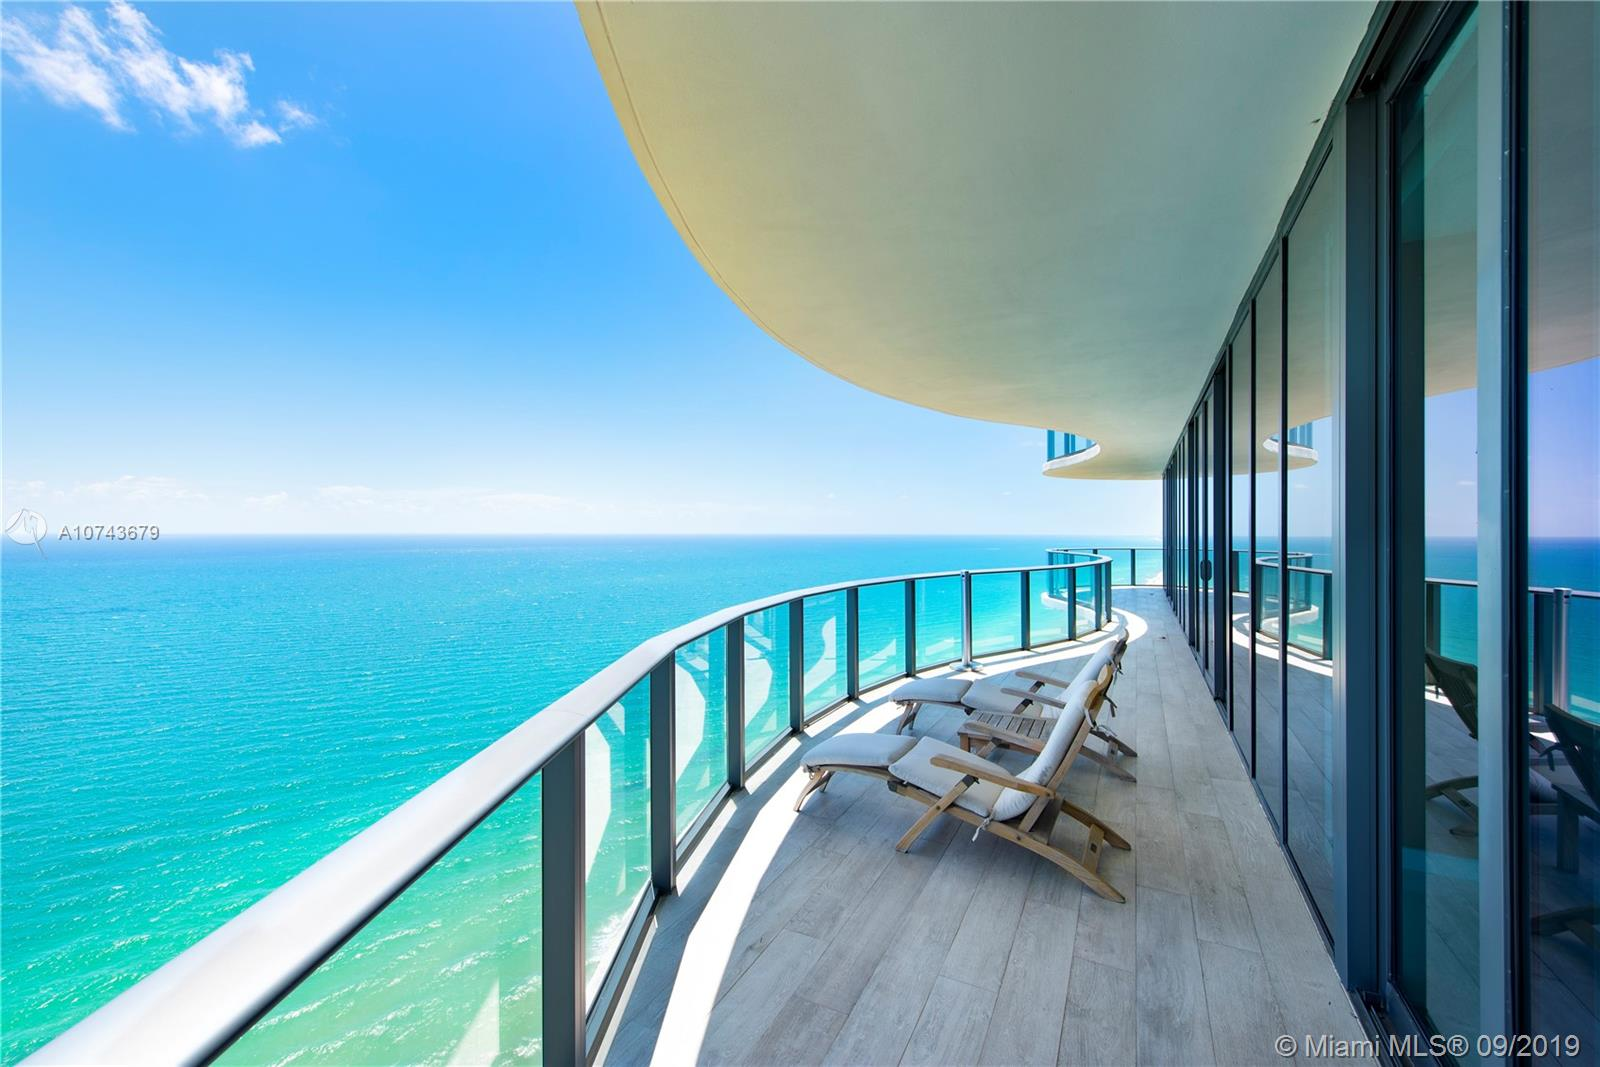 19575 Collins Ave, Unit #36 Luxury Real Estate